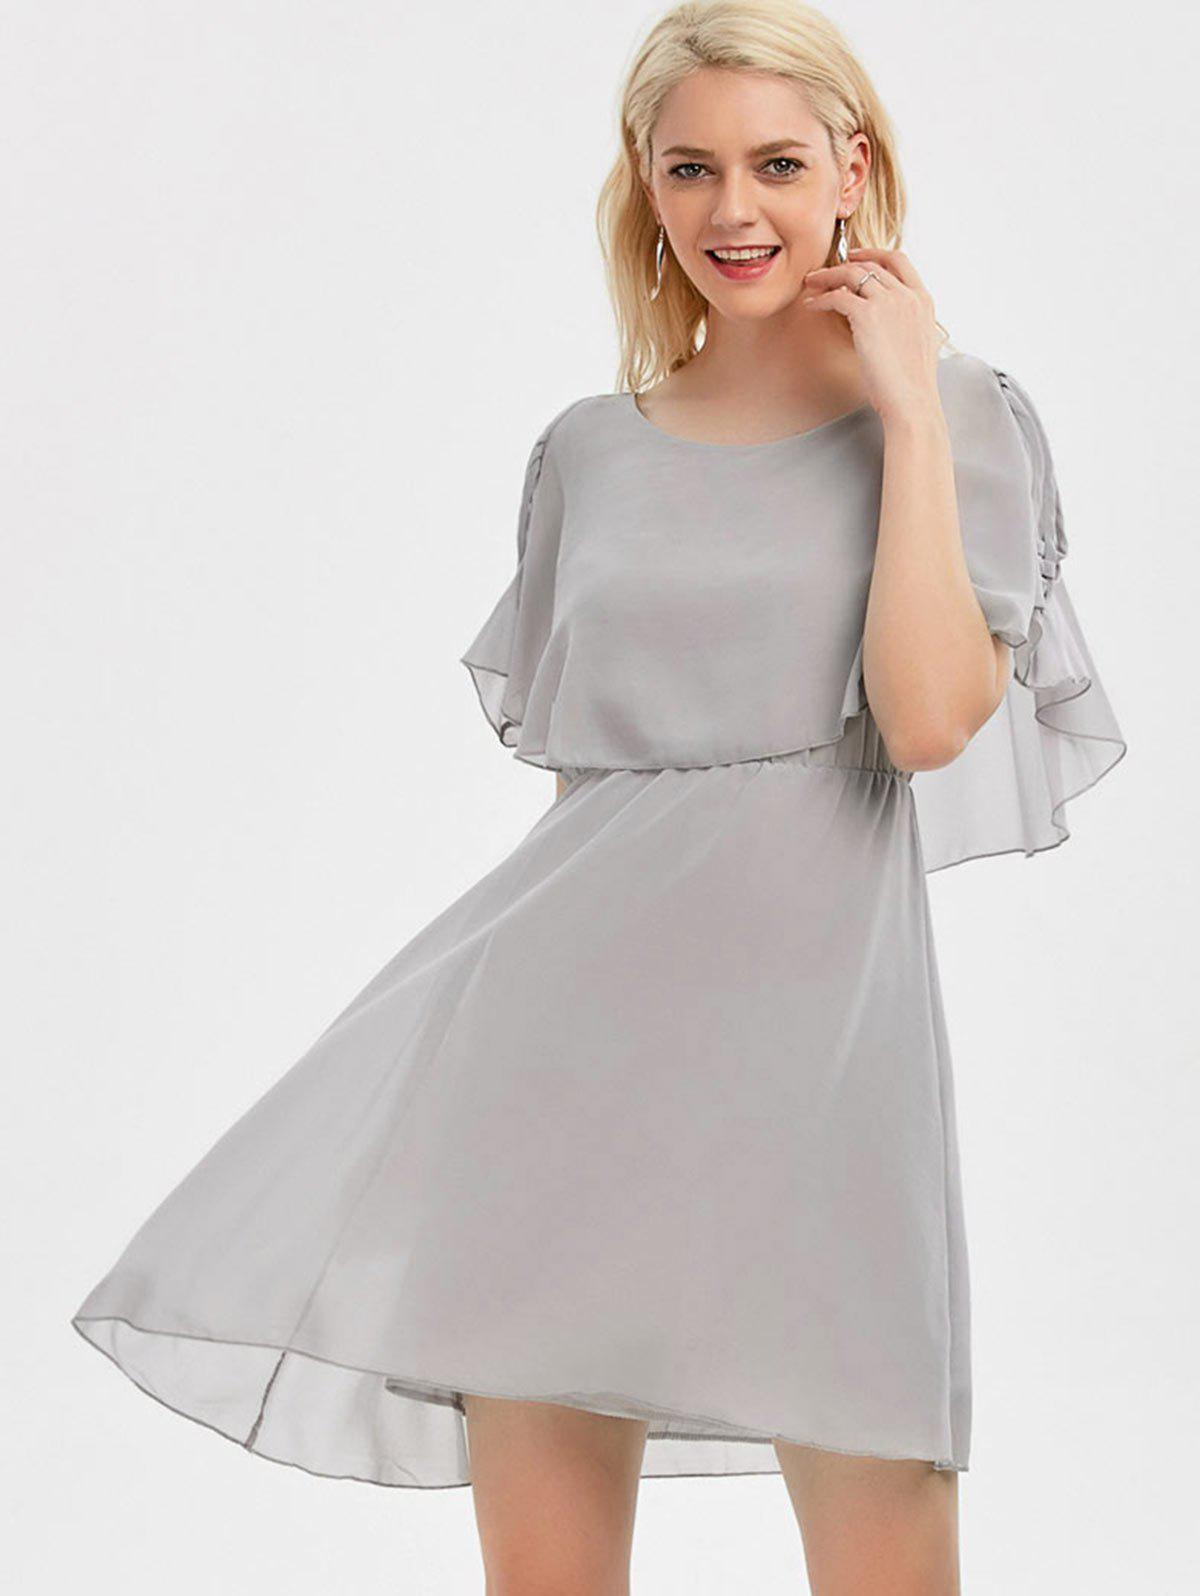 Ruffle Overlay Strappy Chiffon Cold Shoulder Dress - gris L